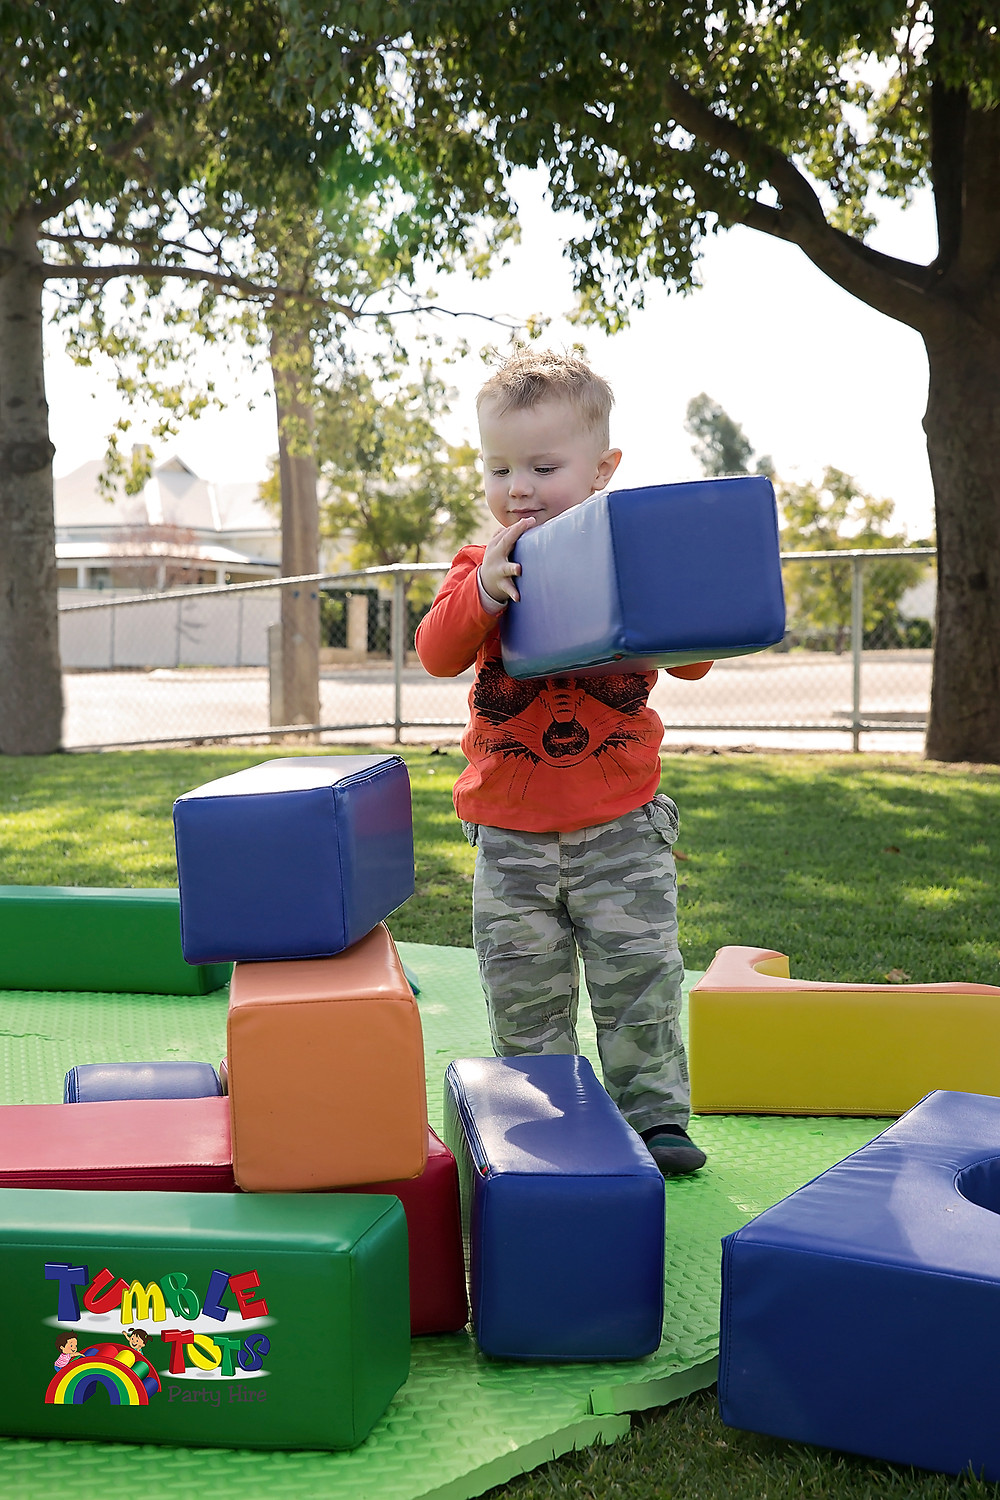 Construction Play with Tumble Tots Party Hire